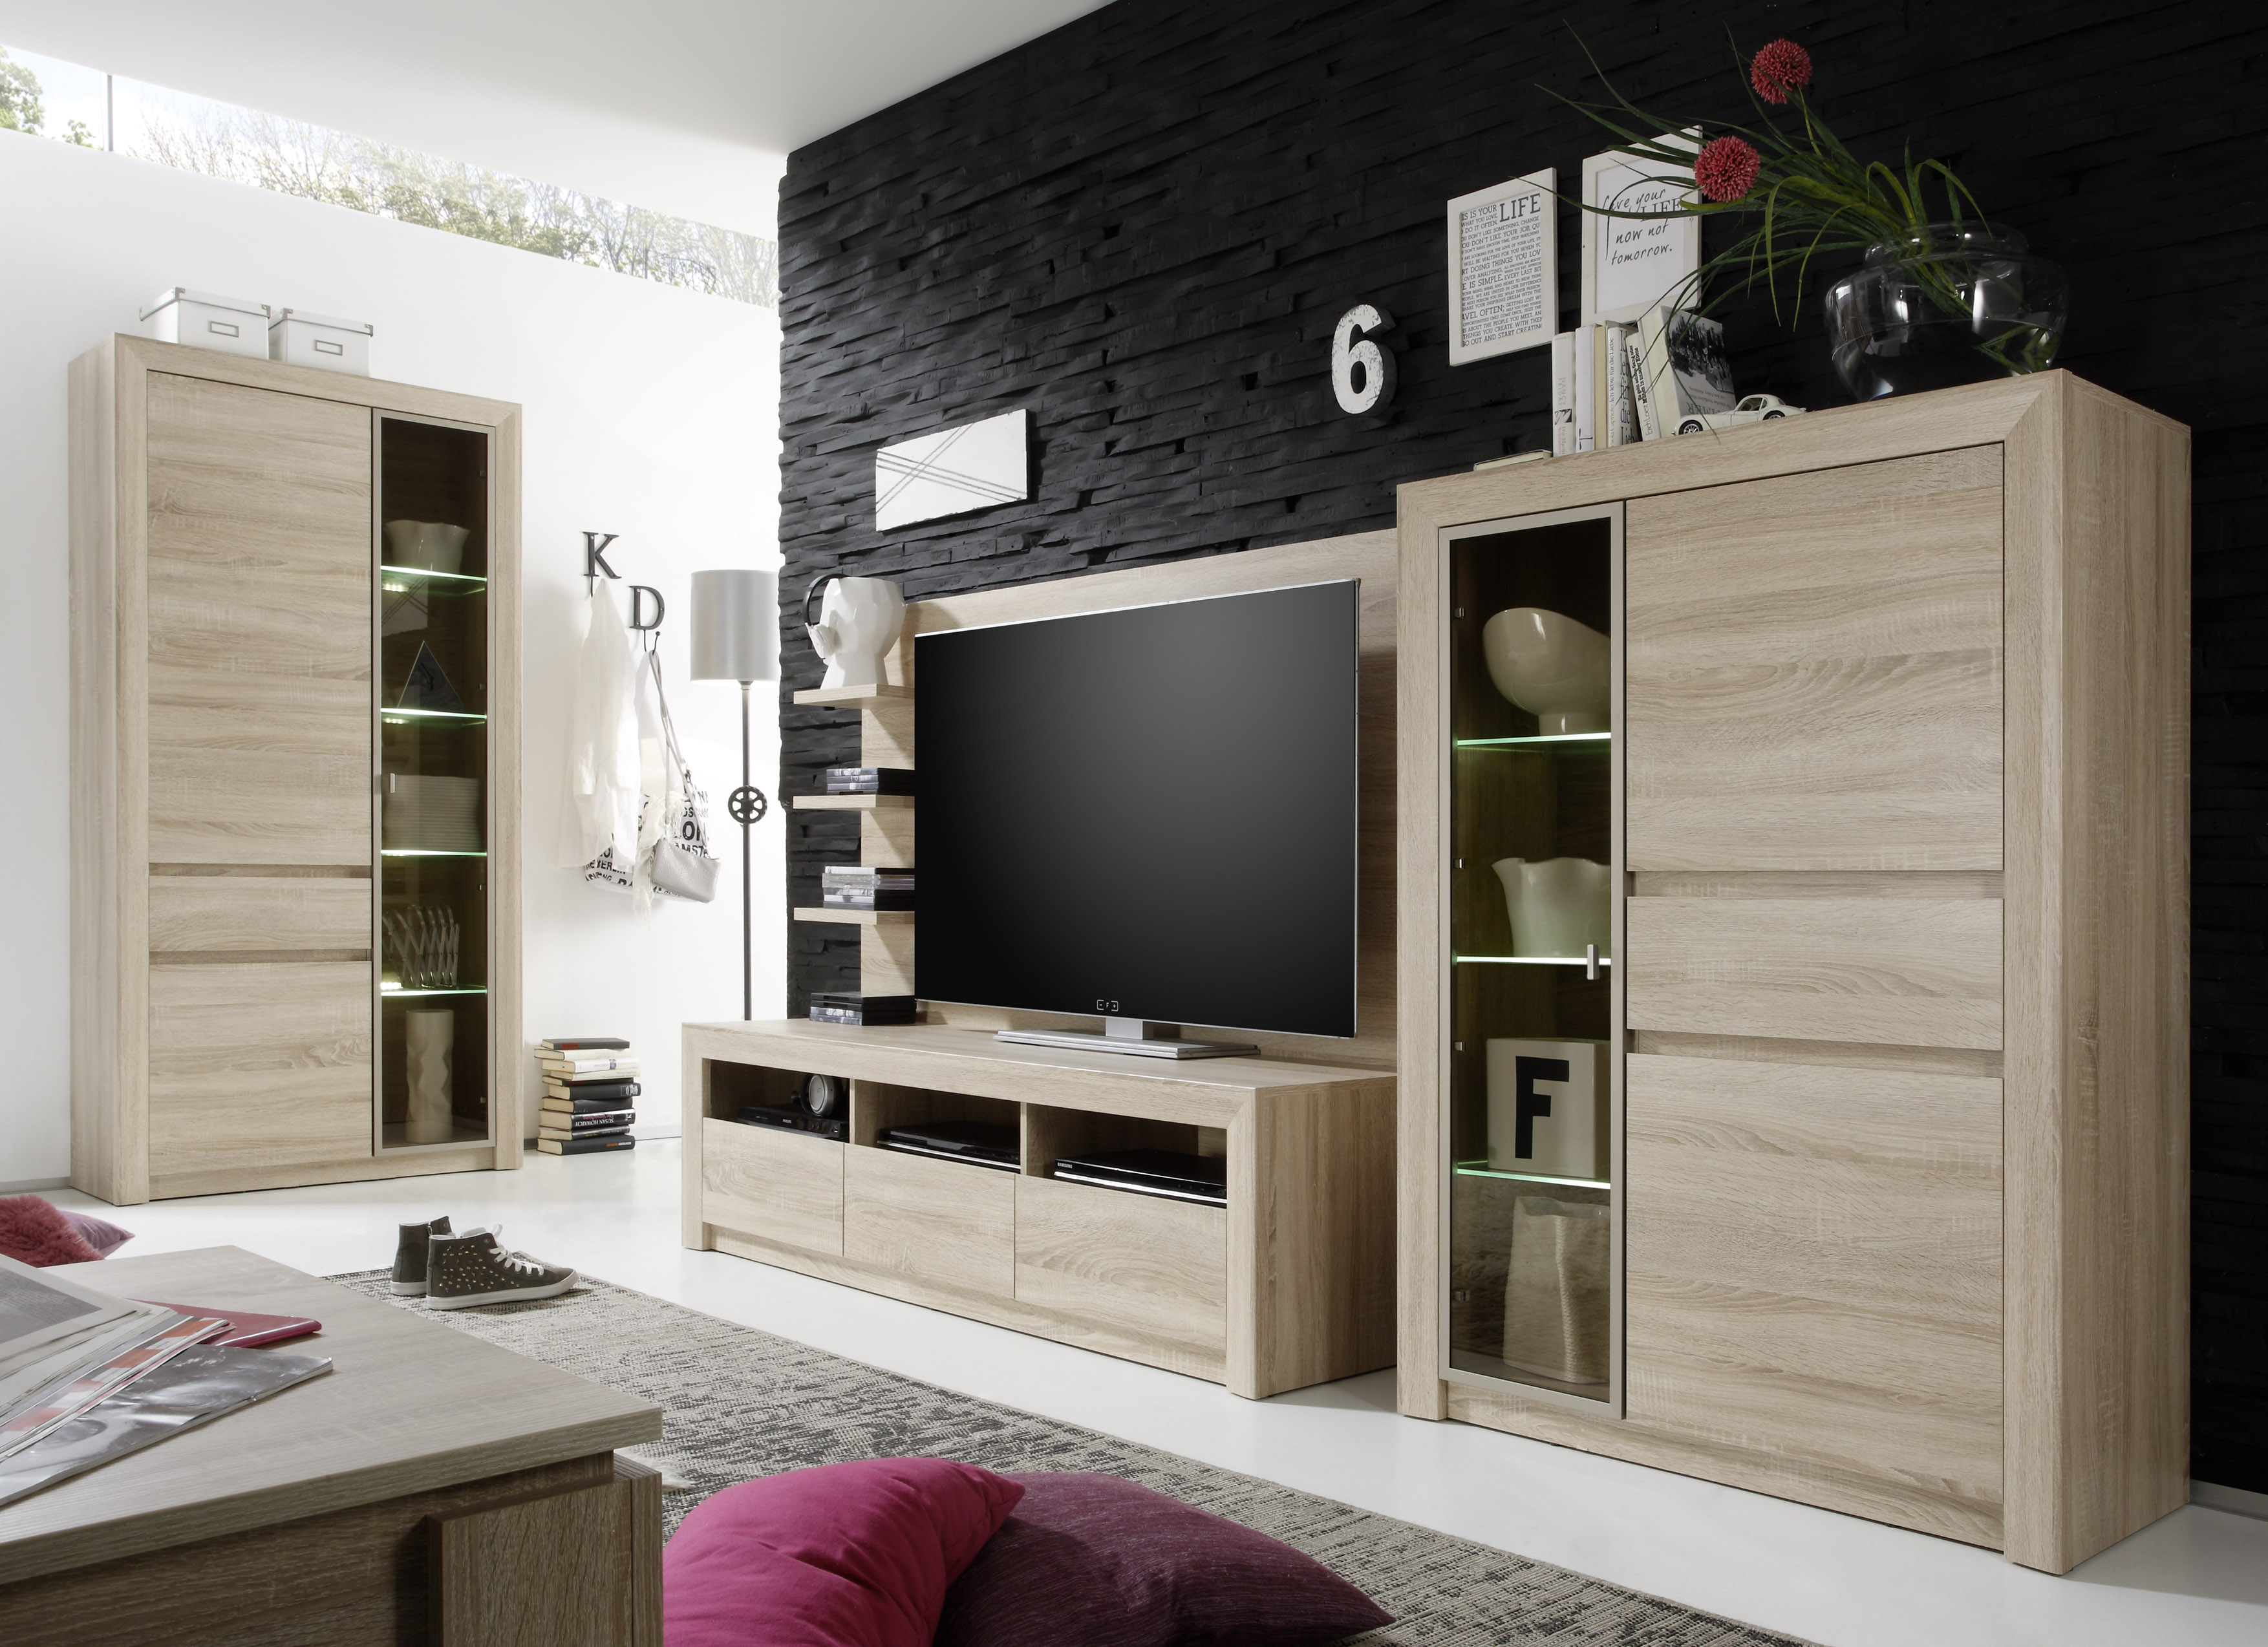 wohnwand eiche sonoma hell mit 2 schr nke. Black Bedroom Furniture Sets. Home Design Ideas